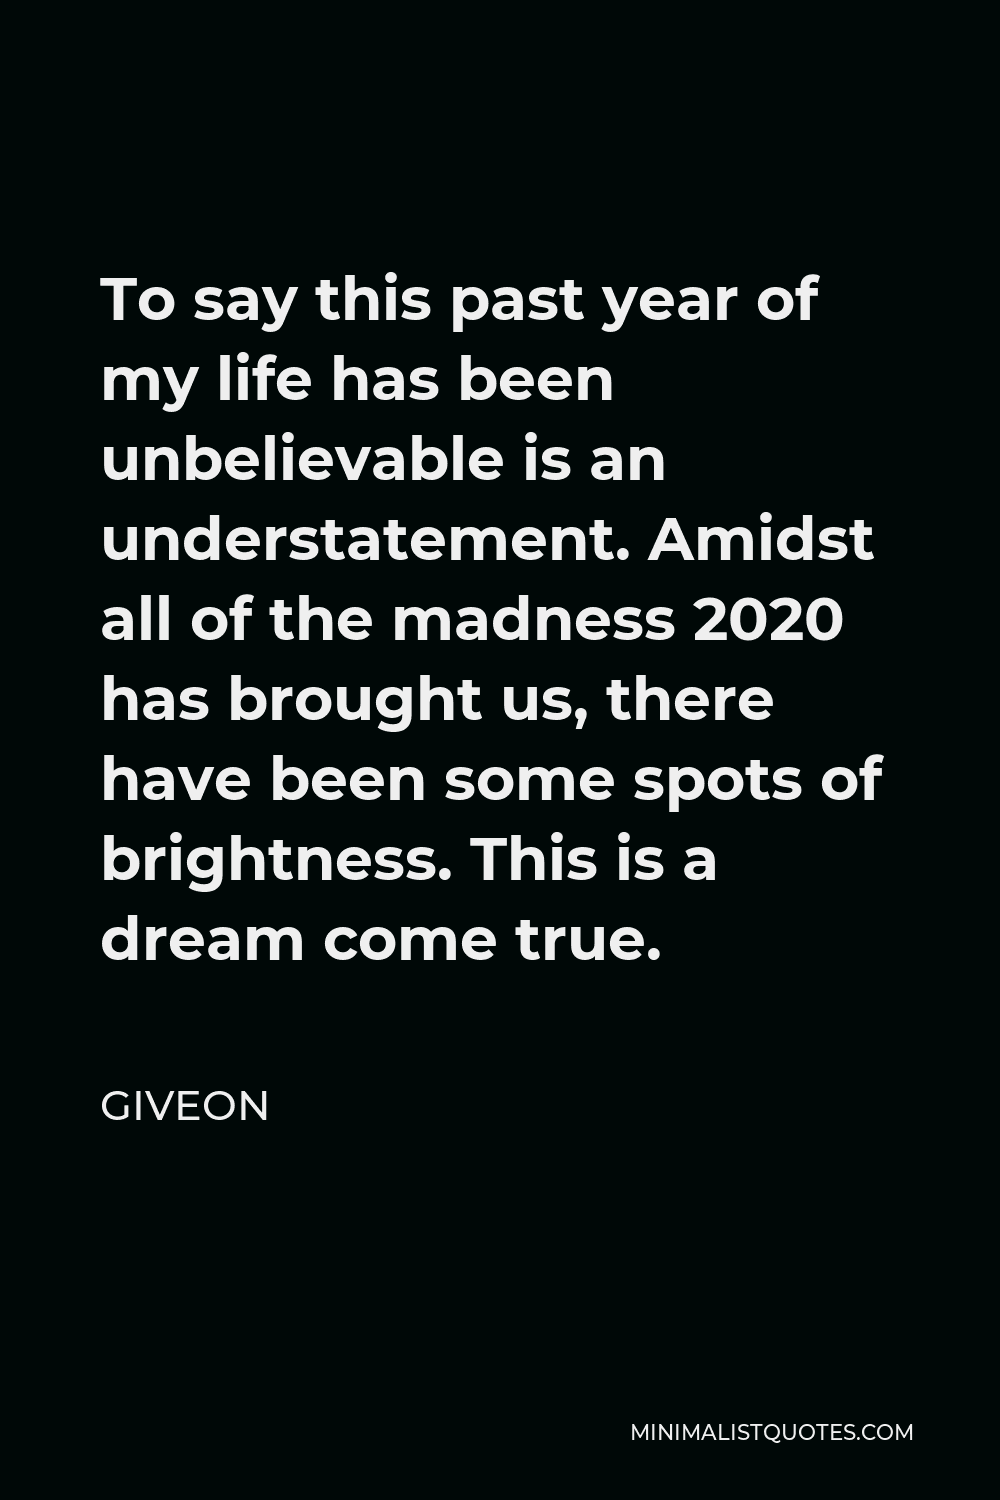 Giveon Quote - To say this past year of my life has been unbelievable is an understatement. Amidst all of the madness 2020 has brought us, there have been some spots of brightness. This is a dream come true.